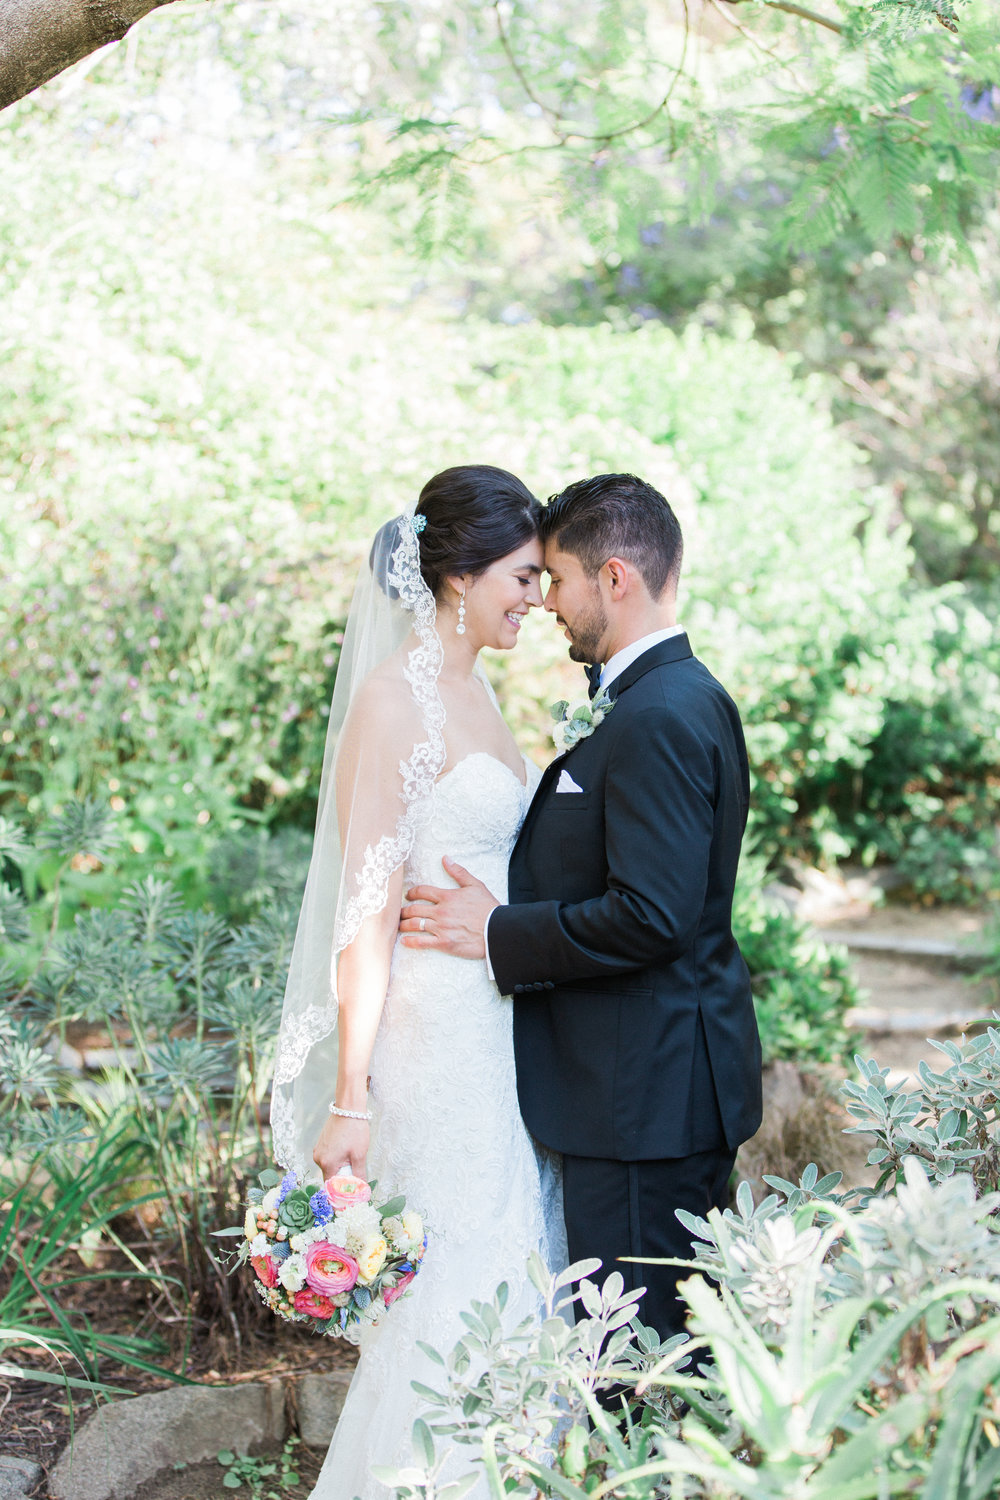 Christina & Carlos | Married | Lauren Alisse Photography -725.jpg